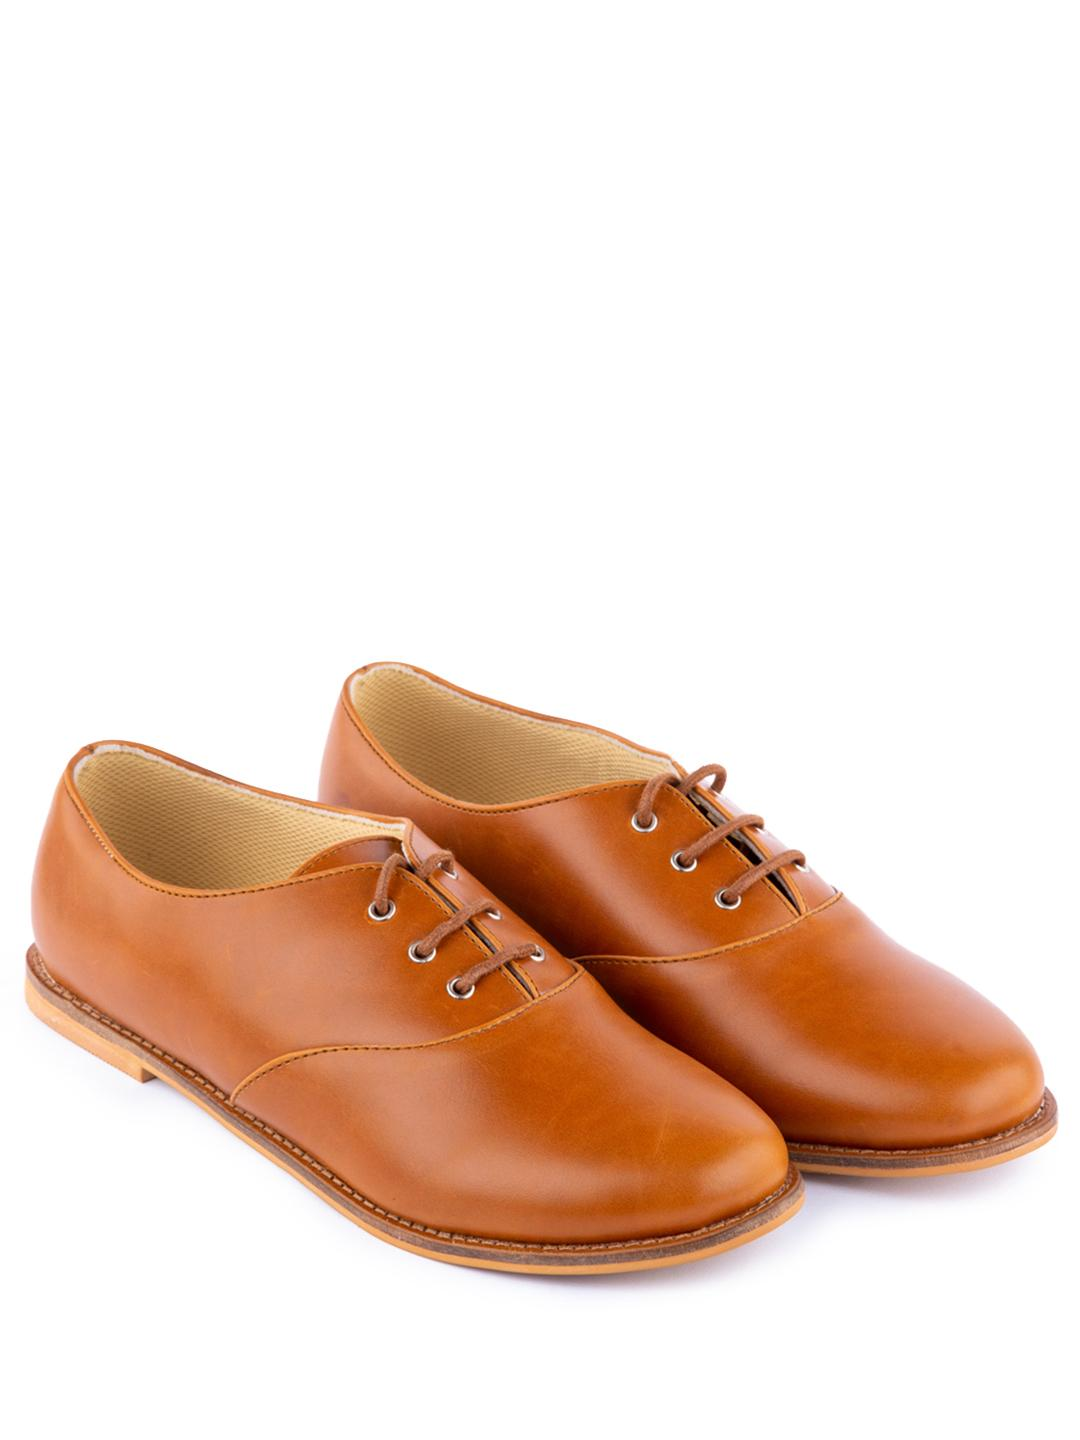 Yellow Soles Brown Lace-Up Oxford Shoes 1